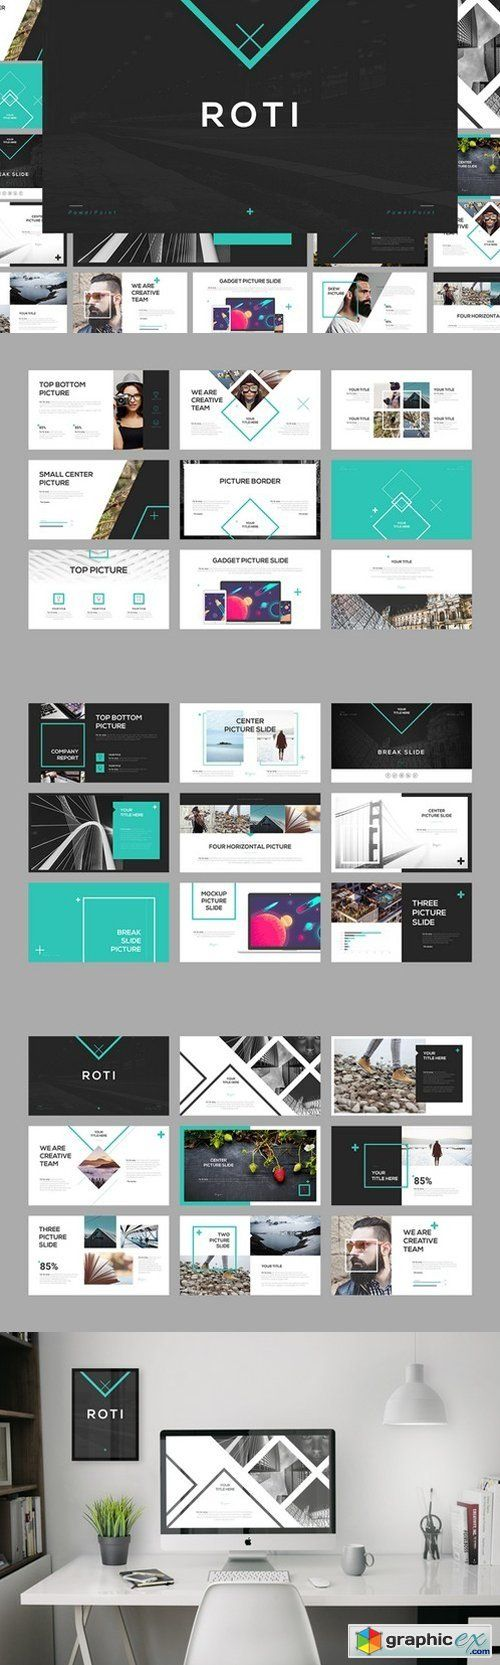 27 best Powerpoint Templates images on Pinterest | Chart design ...